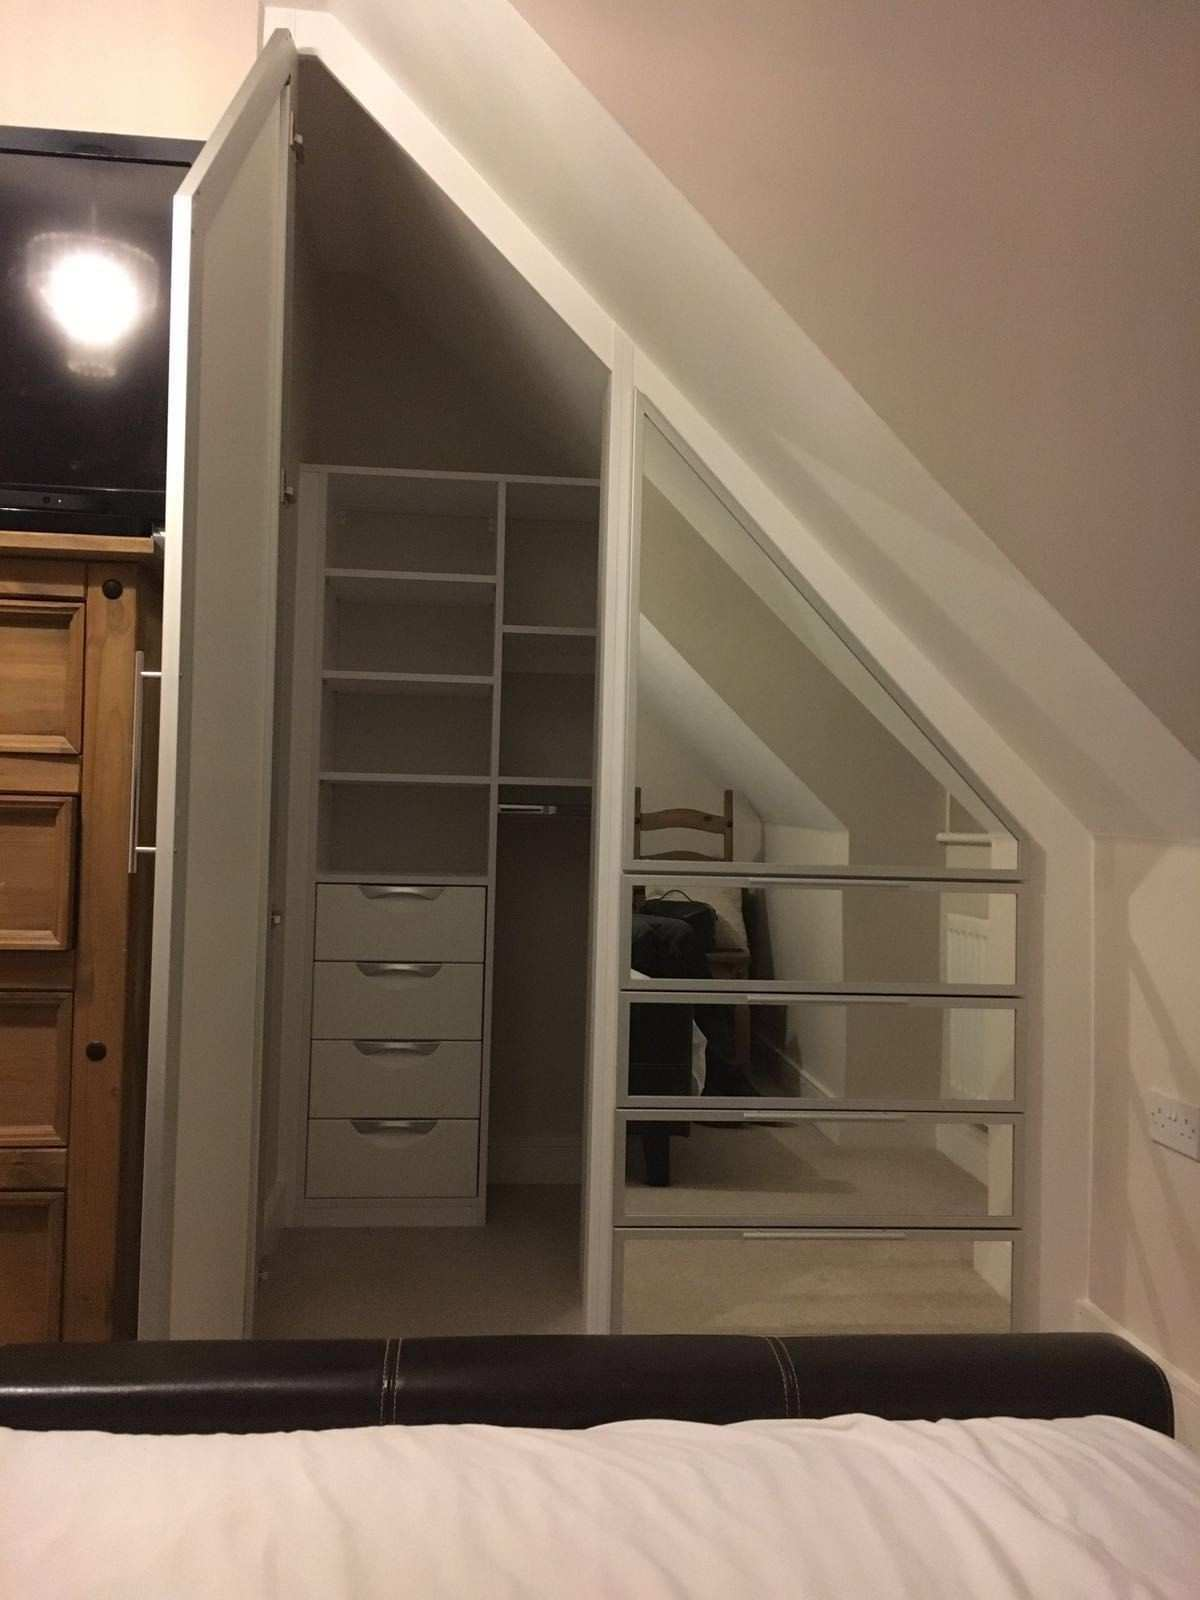 For this client we used the space really well creating a hidden